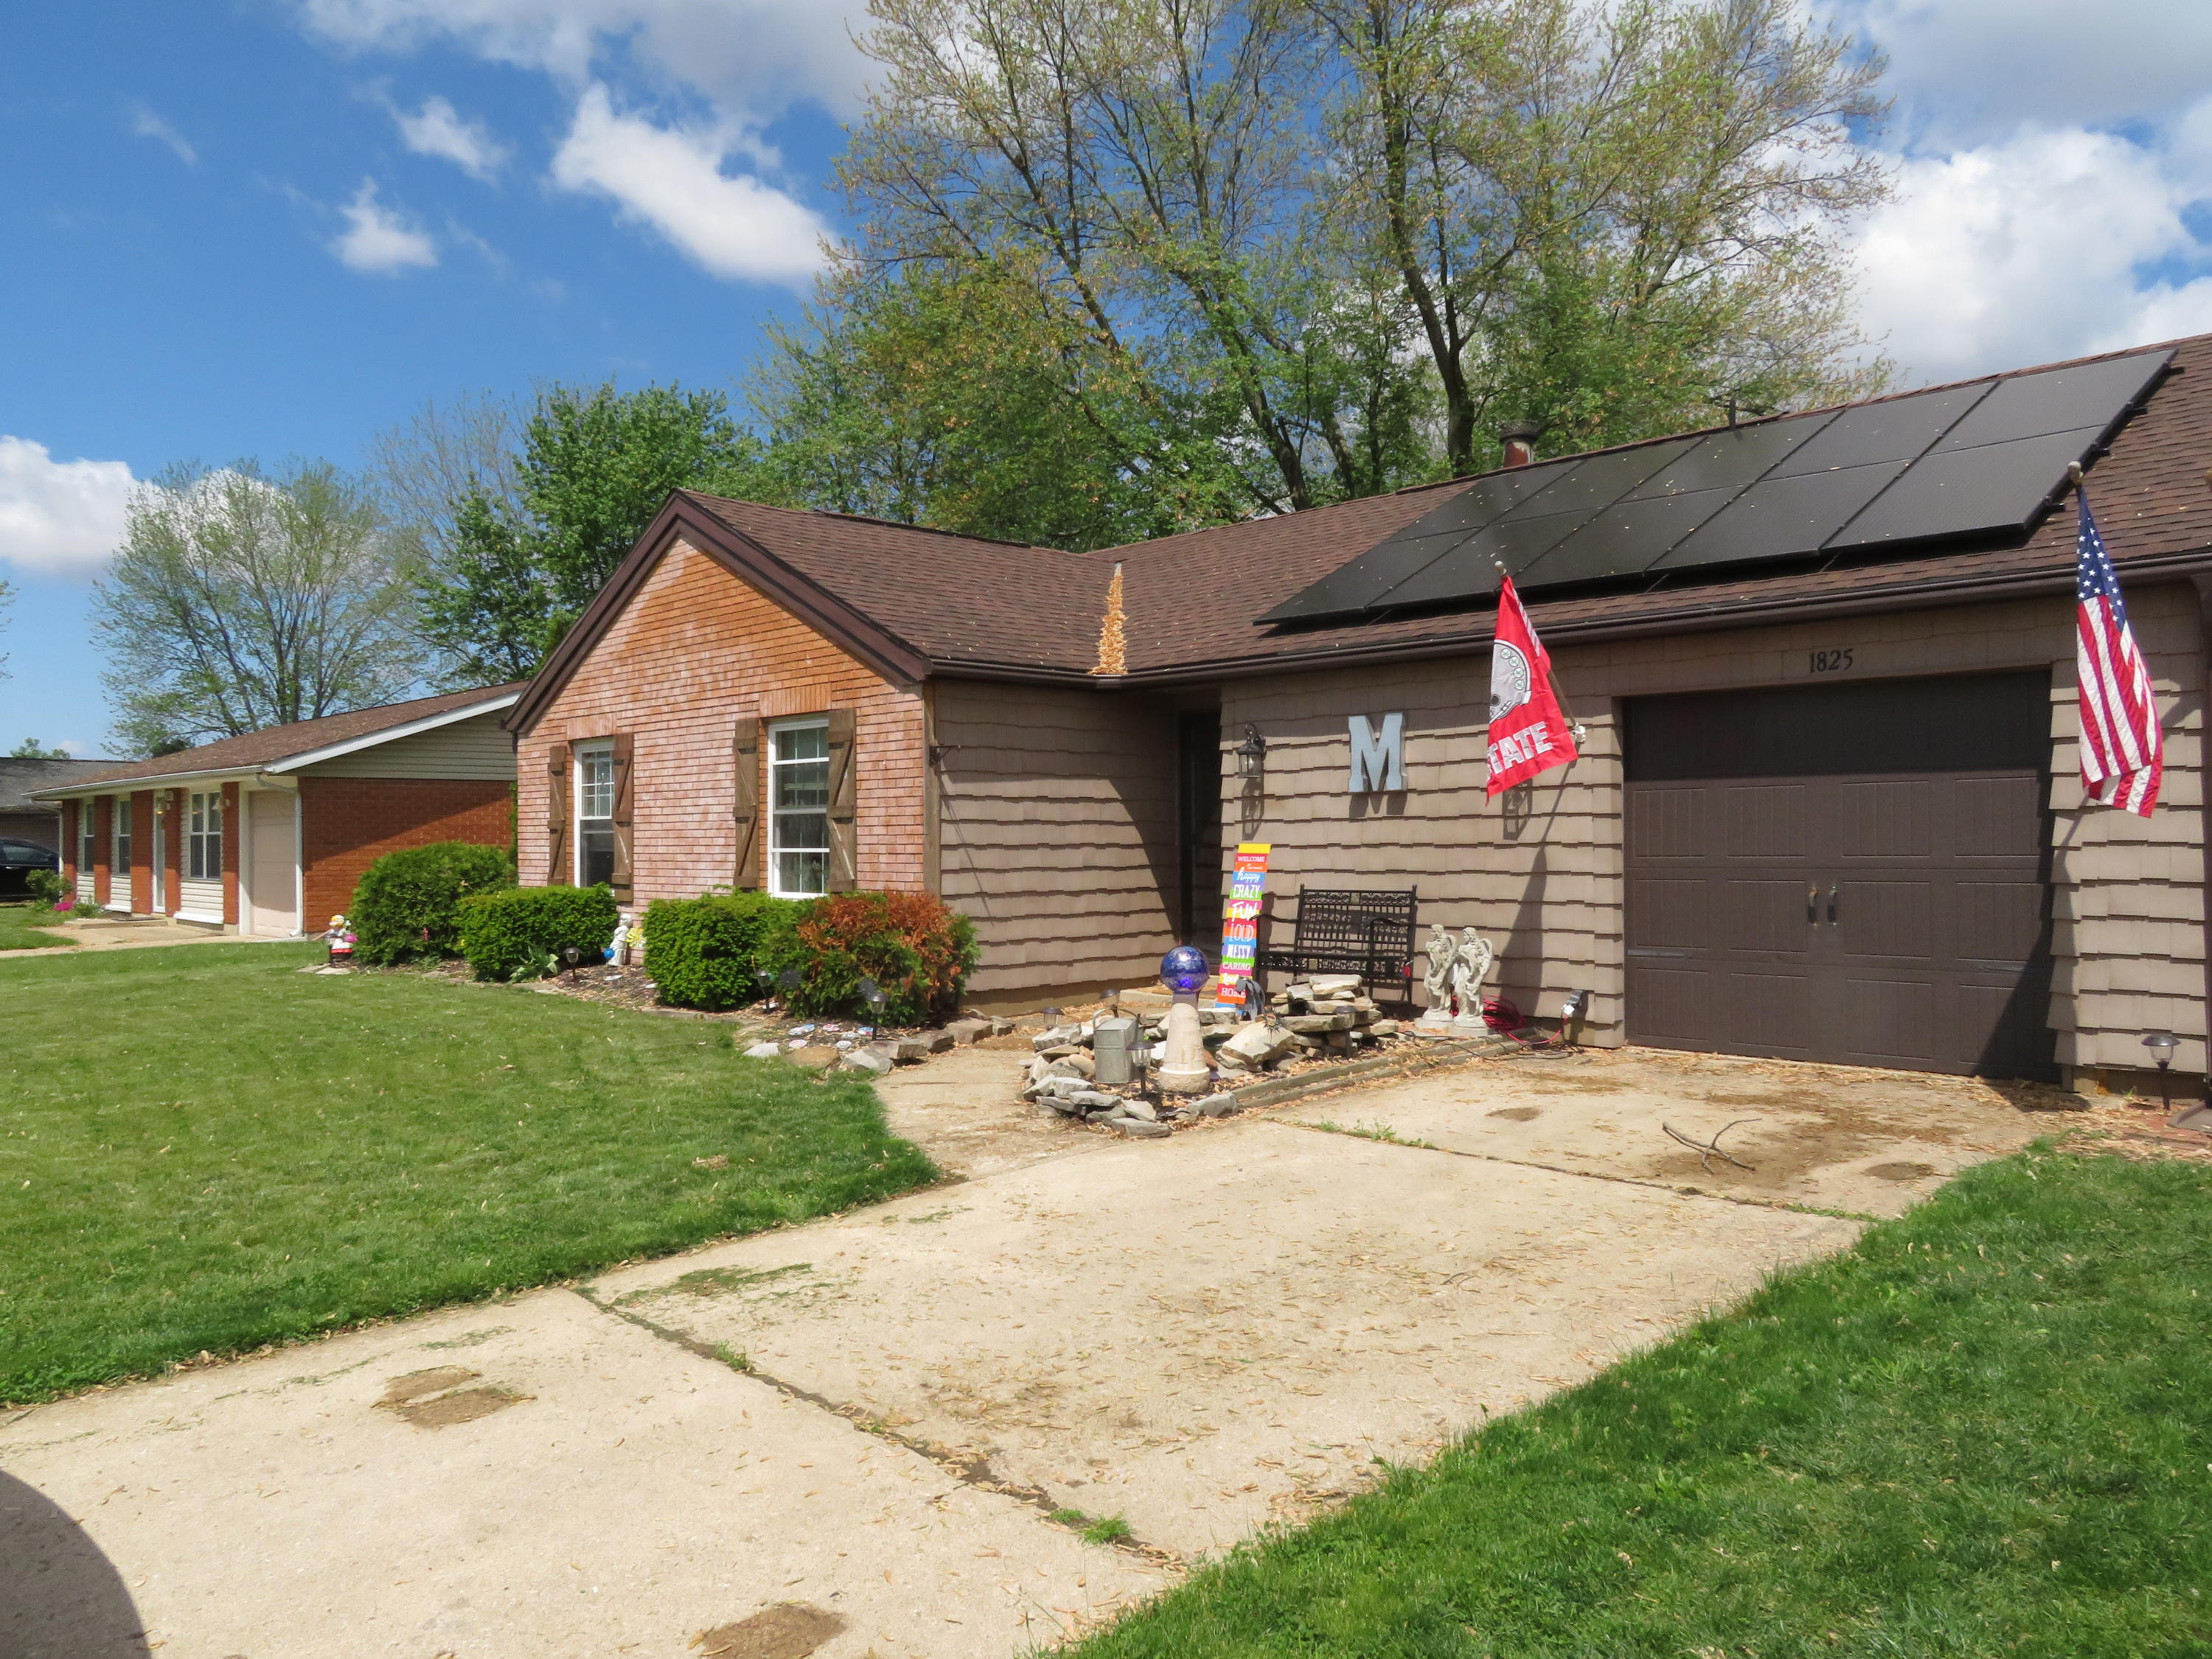 Photo 1 for 1825 Chippewa Dr Circleville, OH 43113